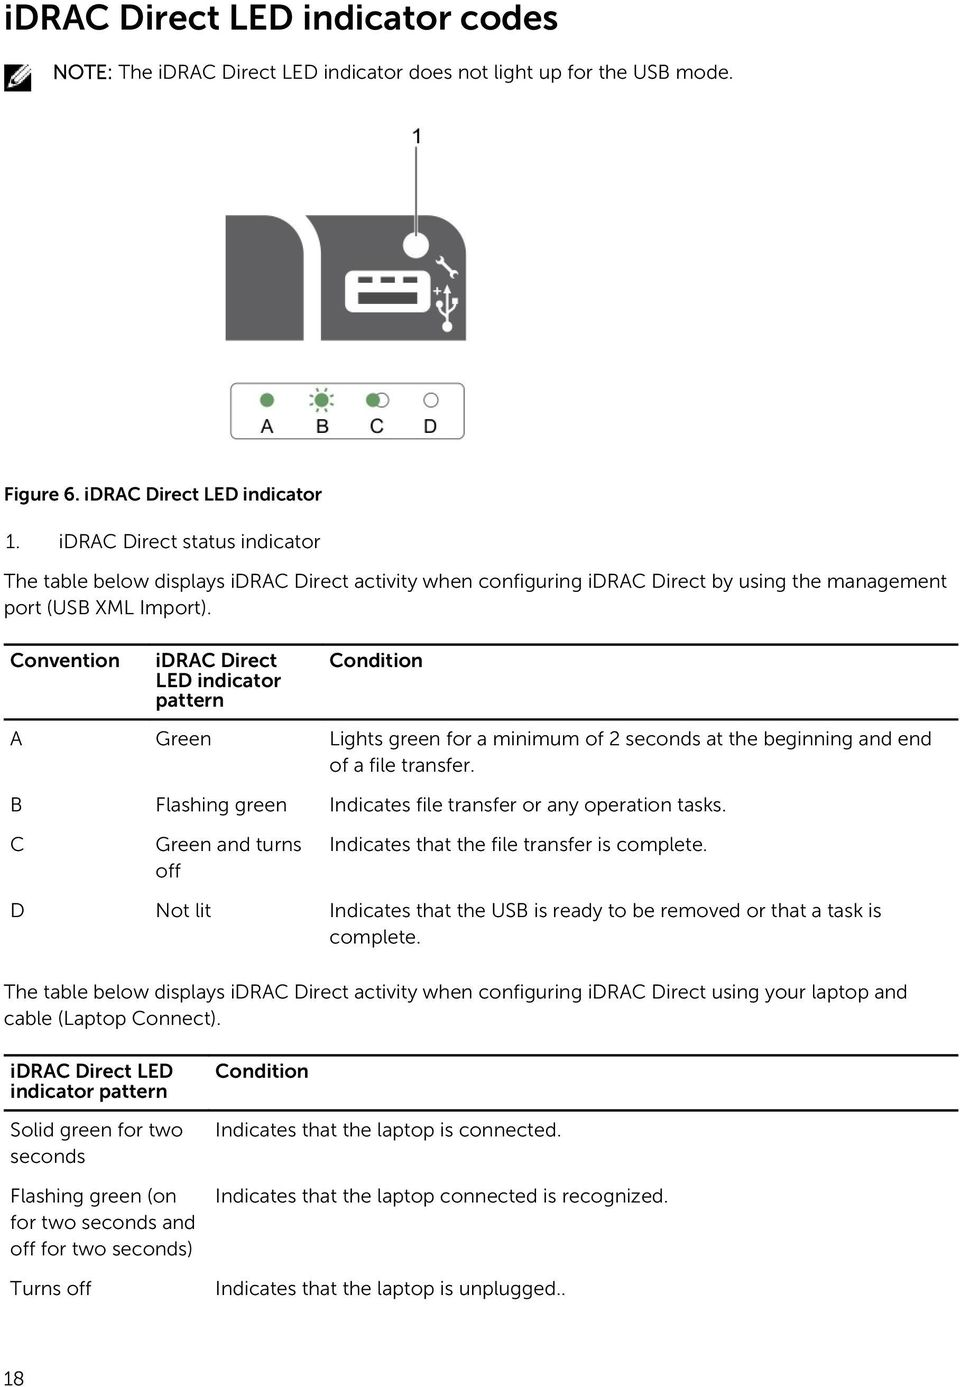 Dell PowerEdge R630 Owner's Manual - PDF